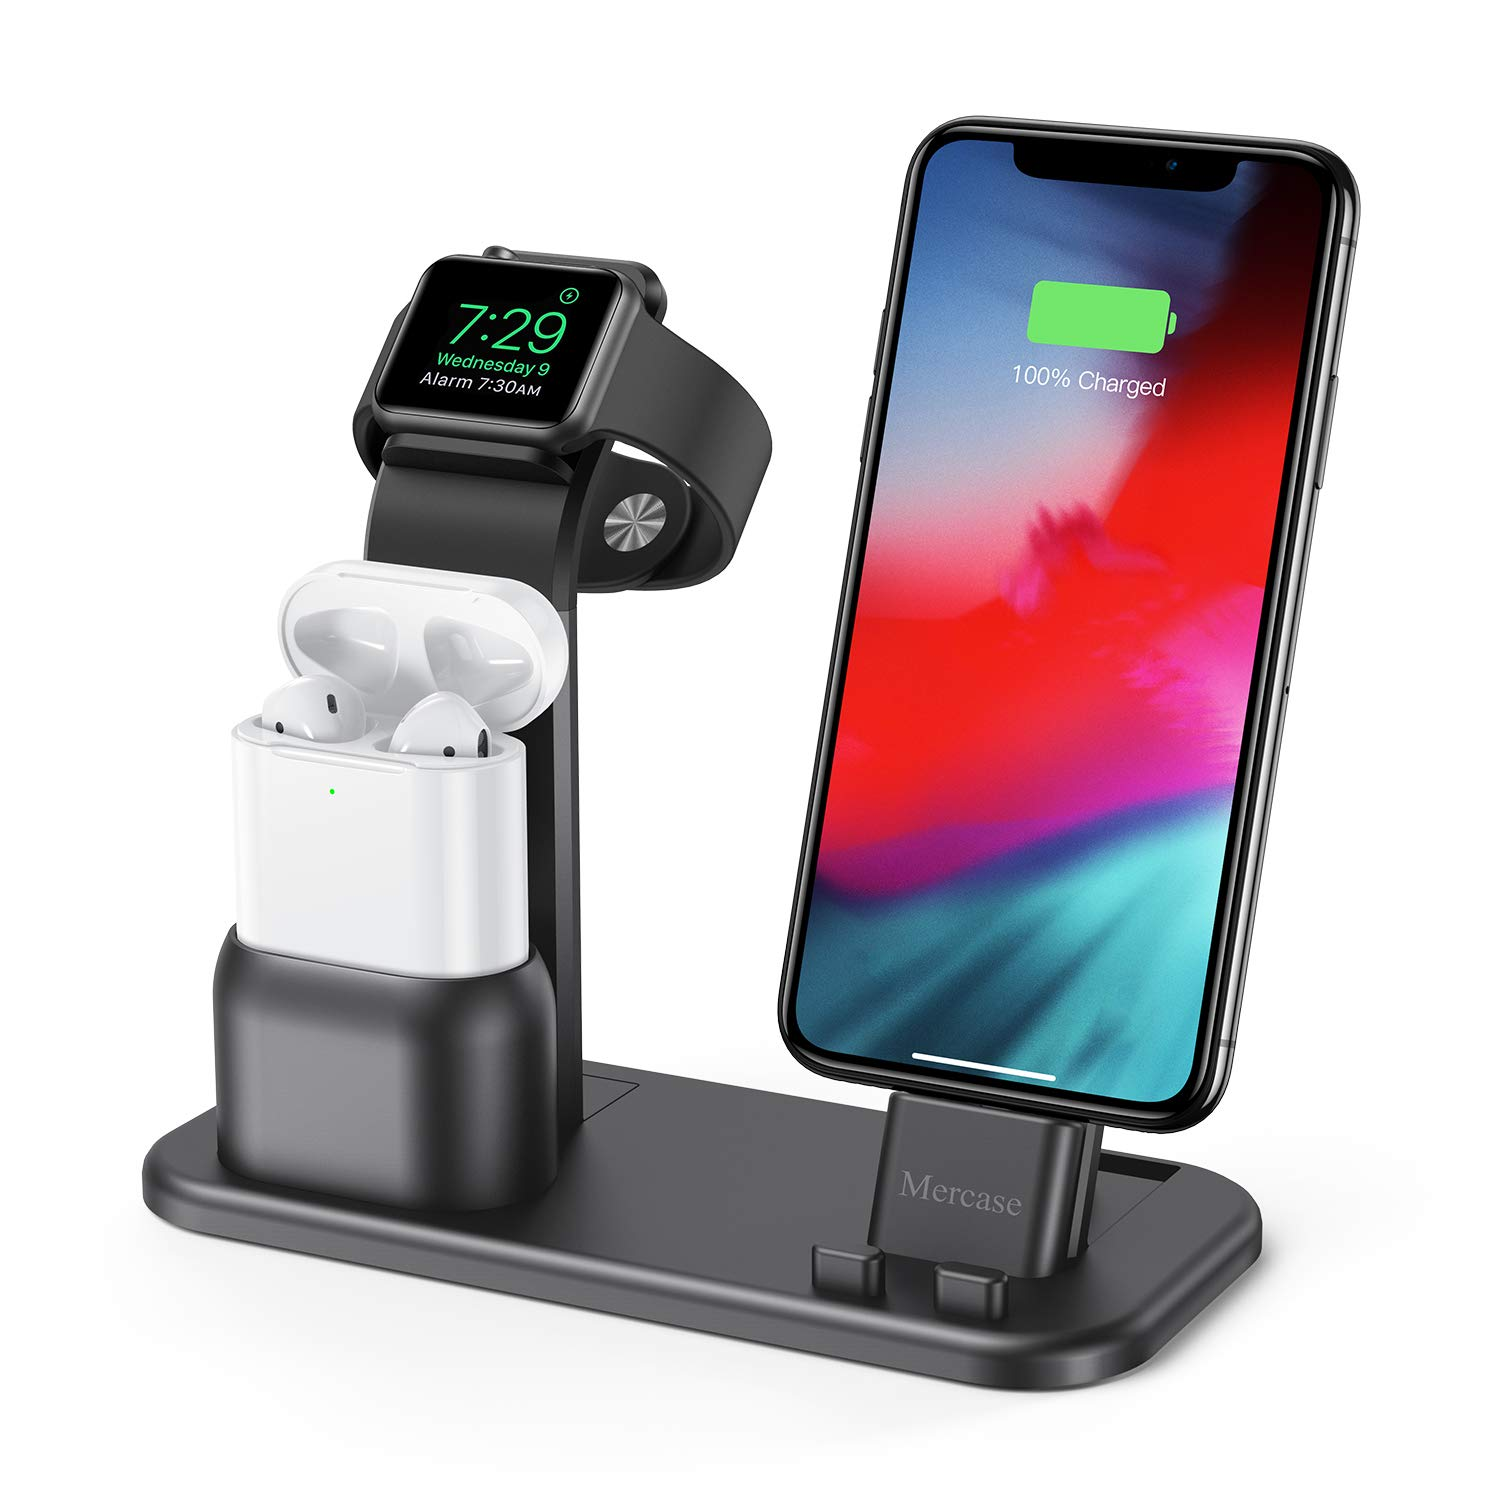 Mercase Apple Charging Station,3 in 1 Aluminum Charging Dock for iPhone Apple Watch and AirPods,Compatible with AirPods,iWatch Series 4/3/2/1,iPhone Xs/X Max/XR/X/8/8 (Space Grey+ USB Cable) by Mercase